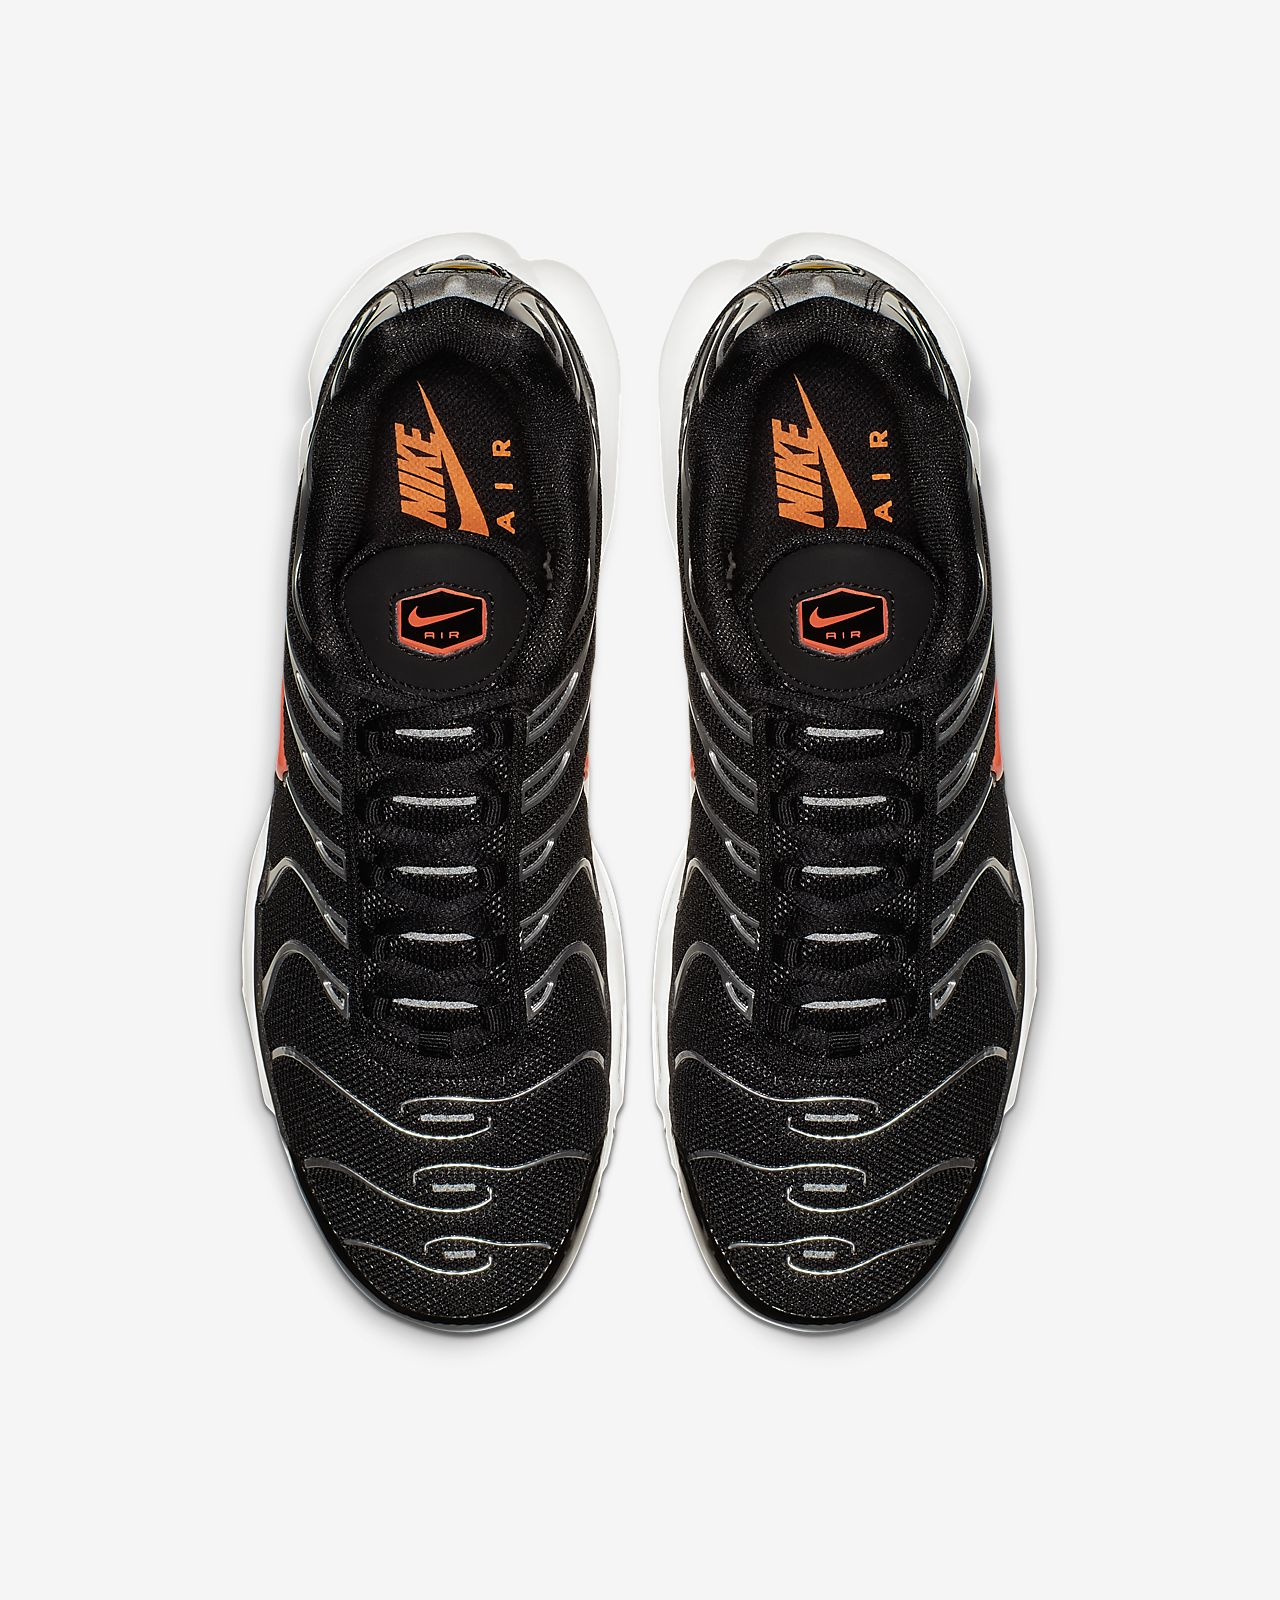 low priced fefc2 51743 Nike Air Max Plus TN SE Men's Shoe